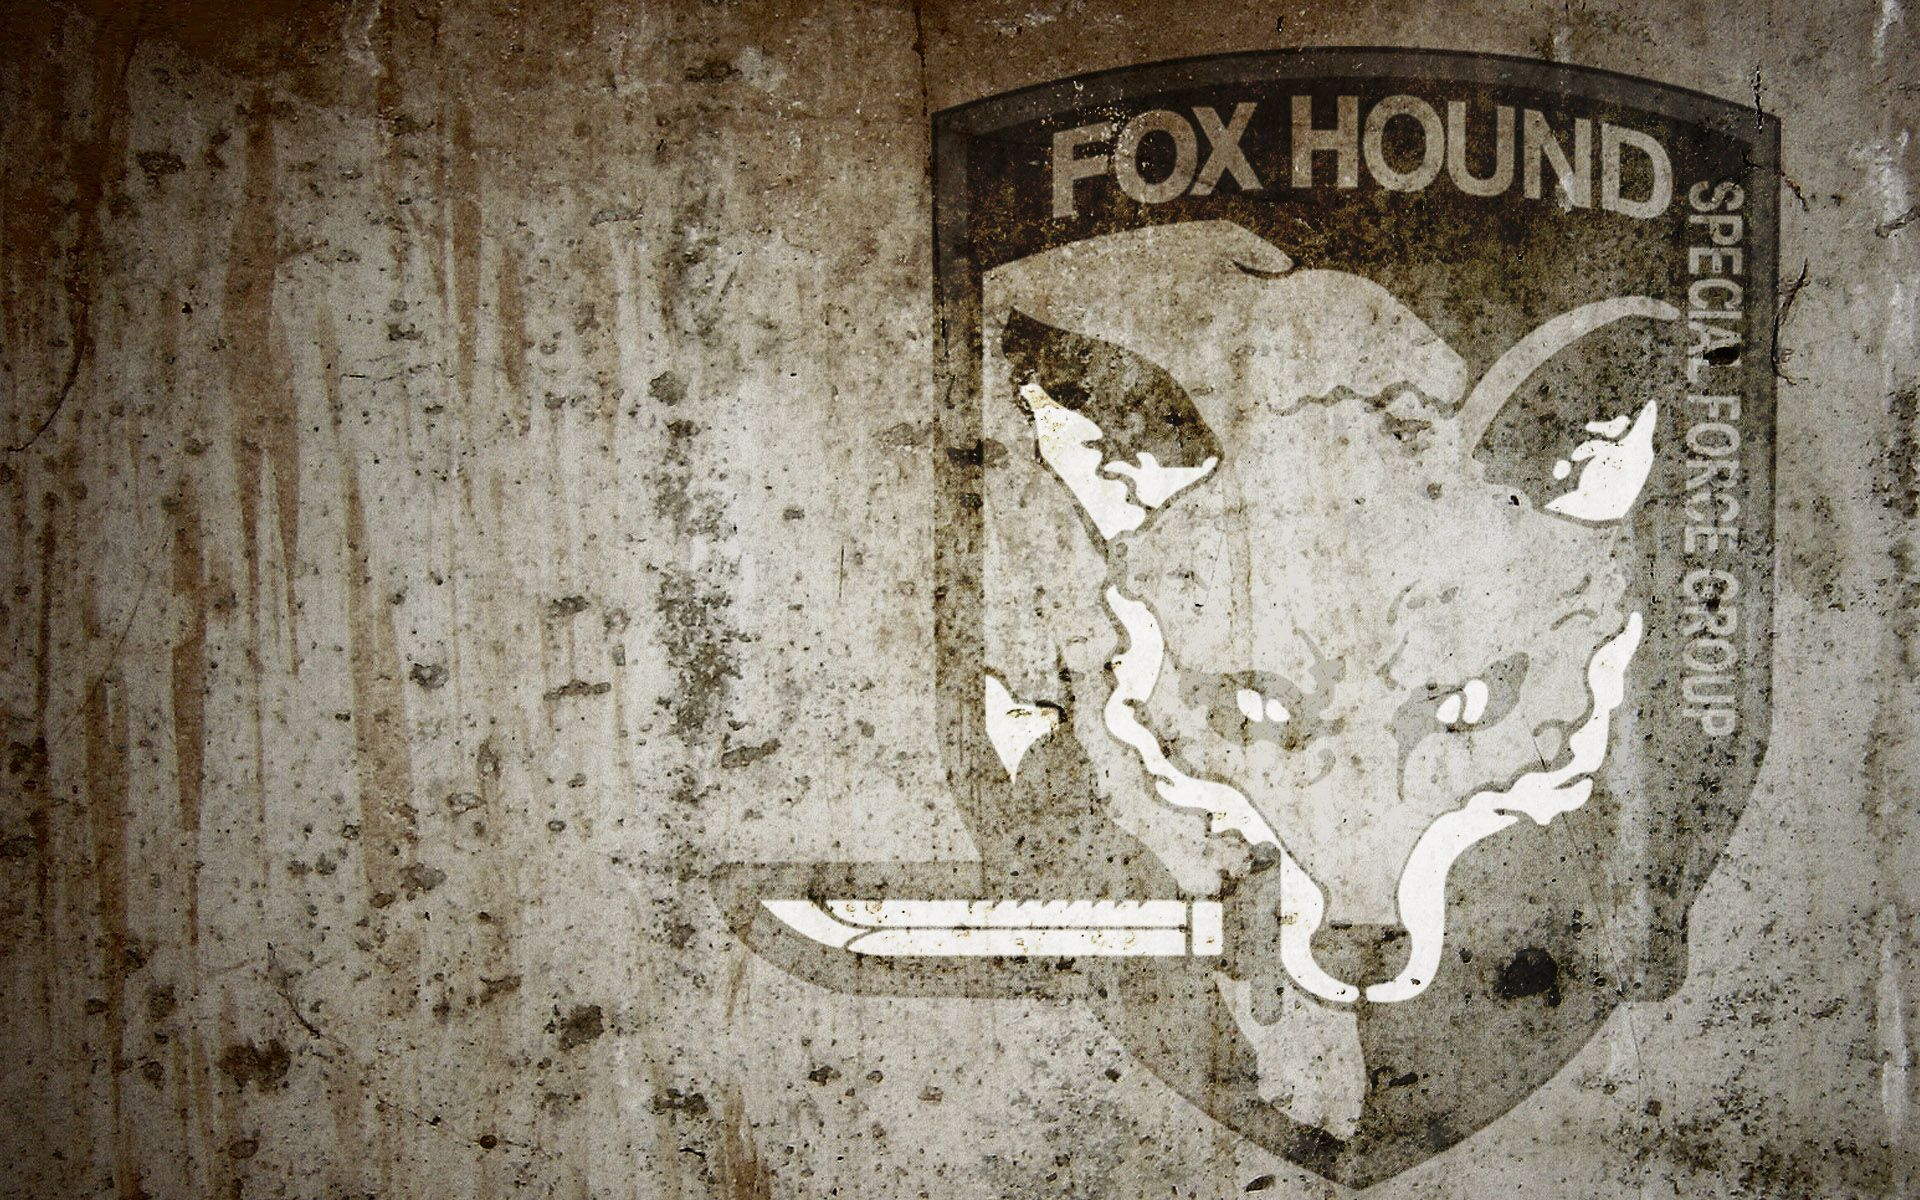 Mgs V Wallpaper 1920 1200 Metal Gear Solid Desktop Wallpapers 24 Wallpapers Adorable Wallpapers Metal Gear Metal Gear Solid The Fox And The Hound